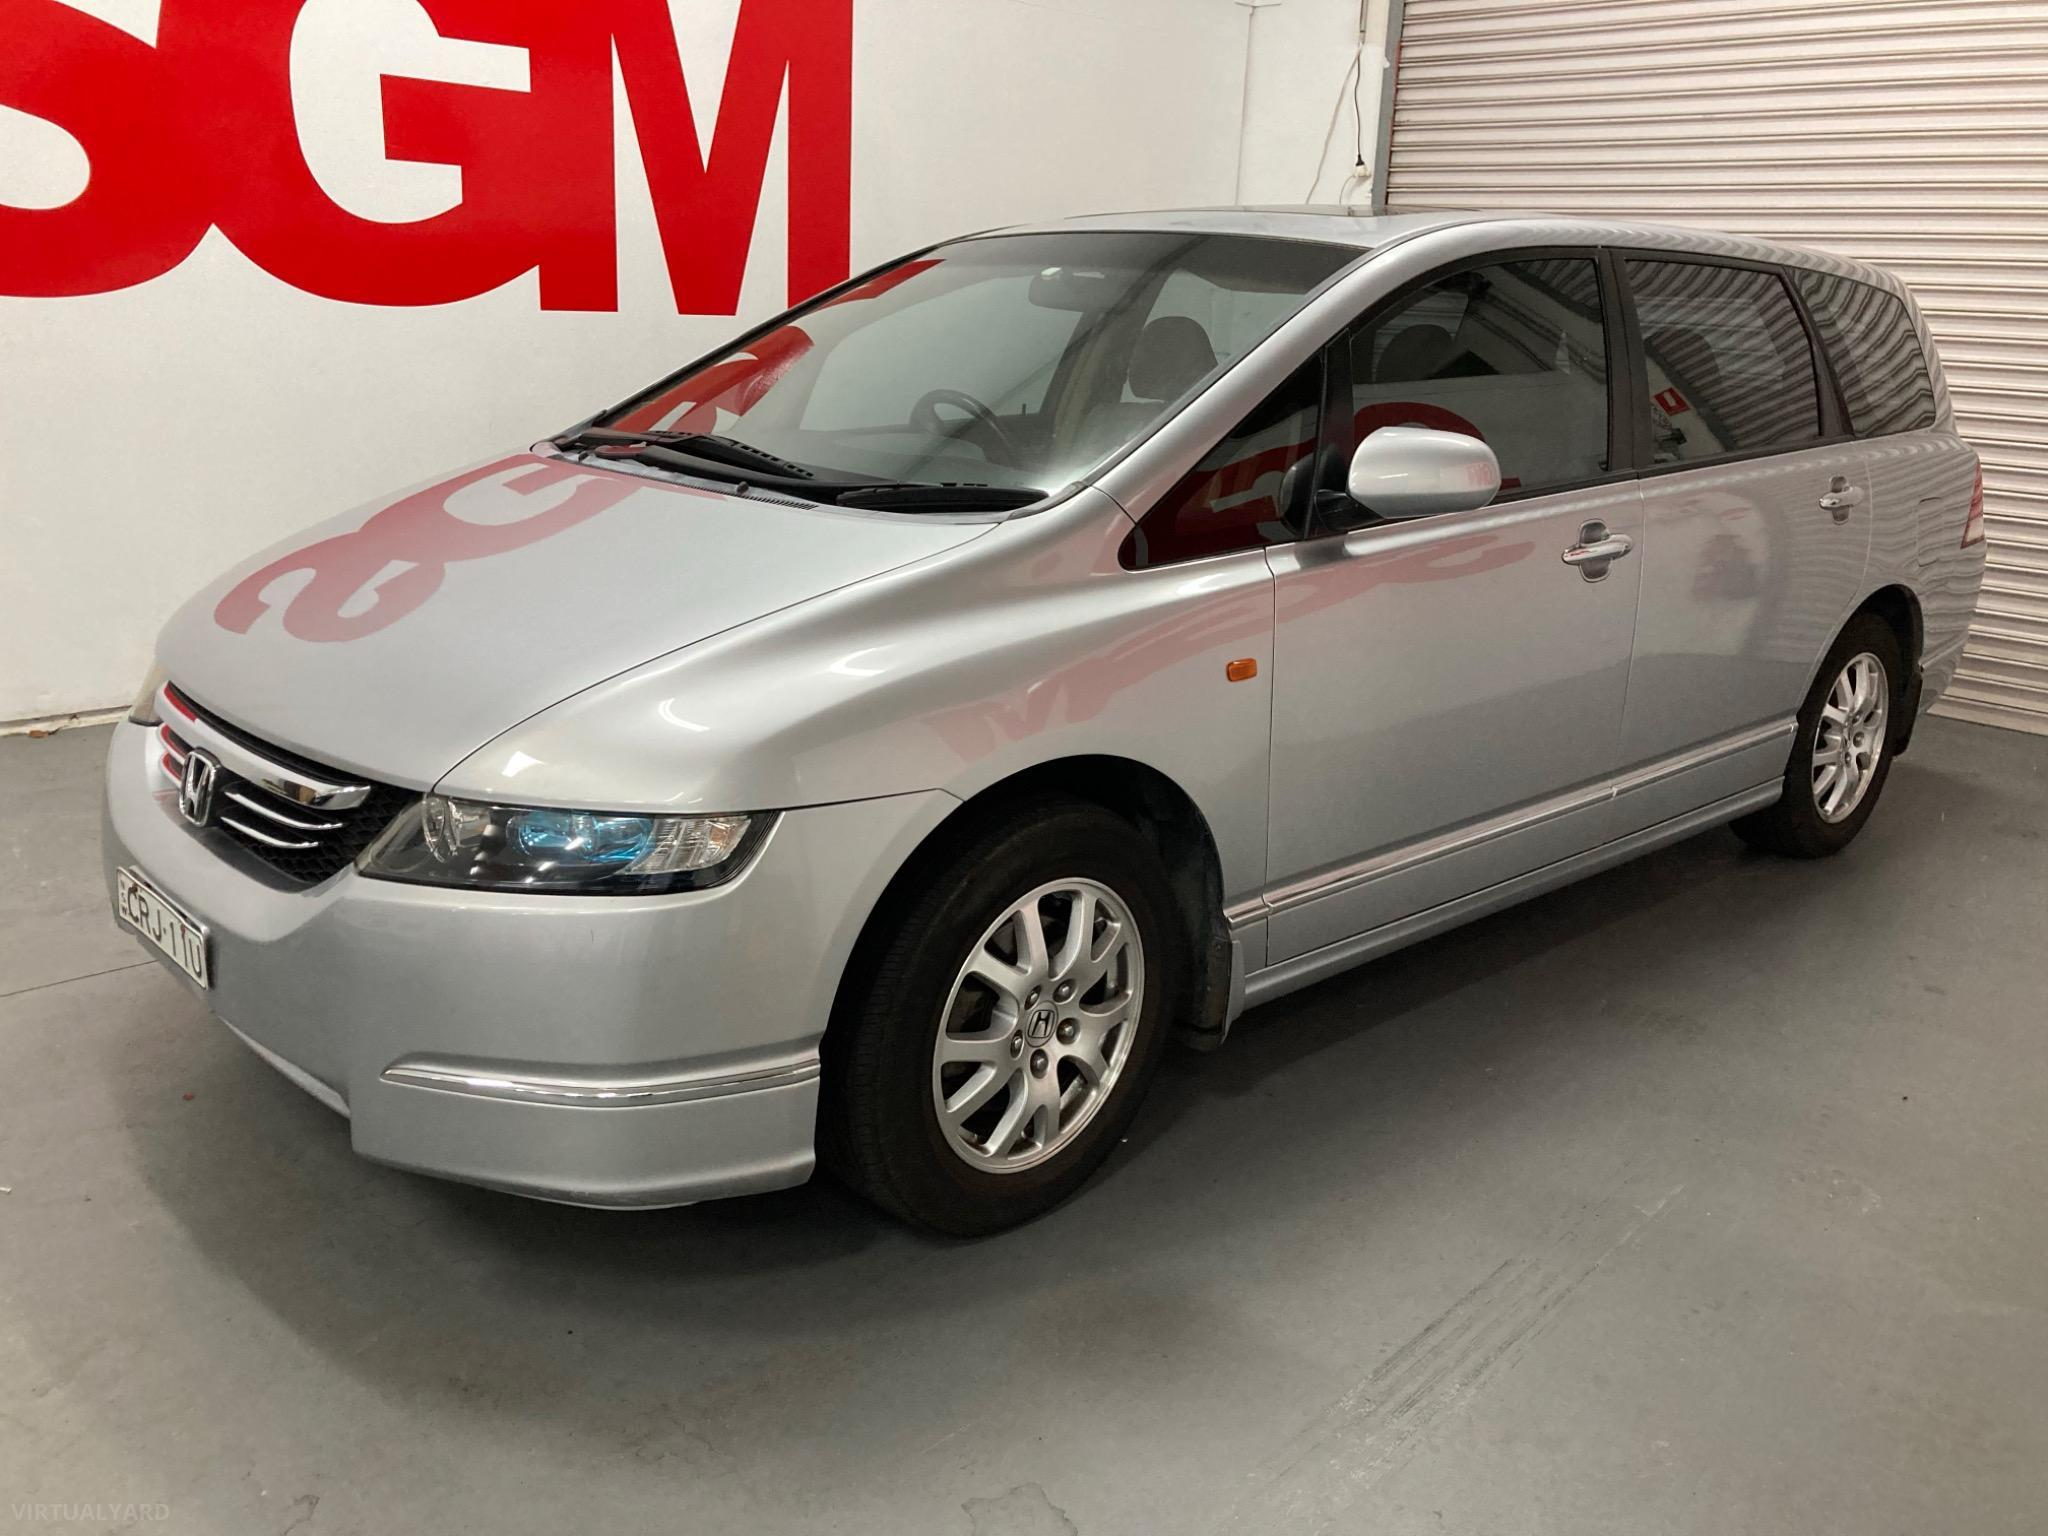 2006 Honda Odyssey 3rd Gen Luxury Wagon 7st 5dr Spts Auto 5sp 2.4i Picture 8